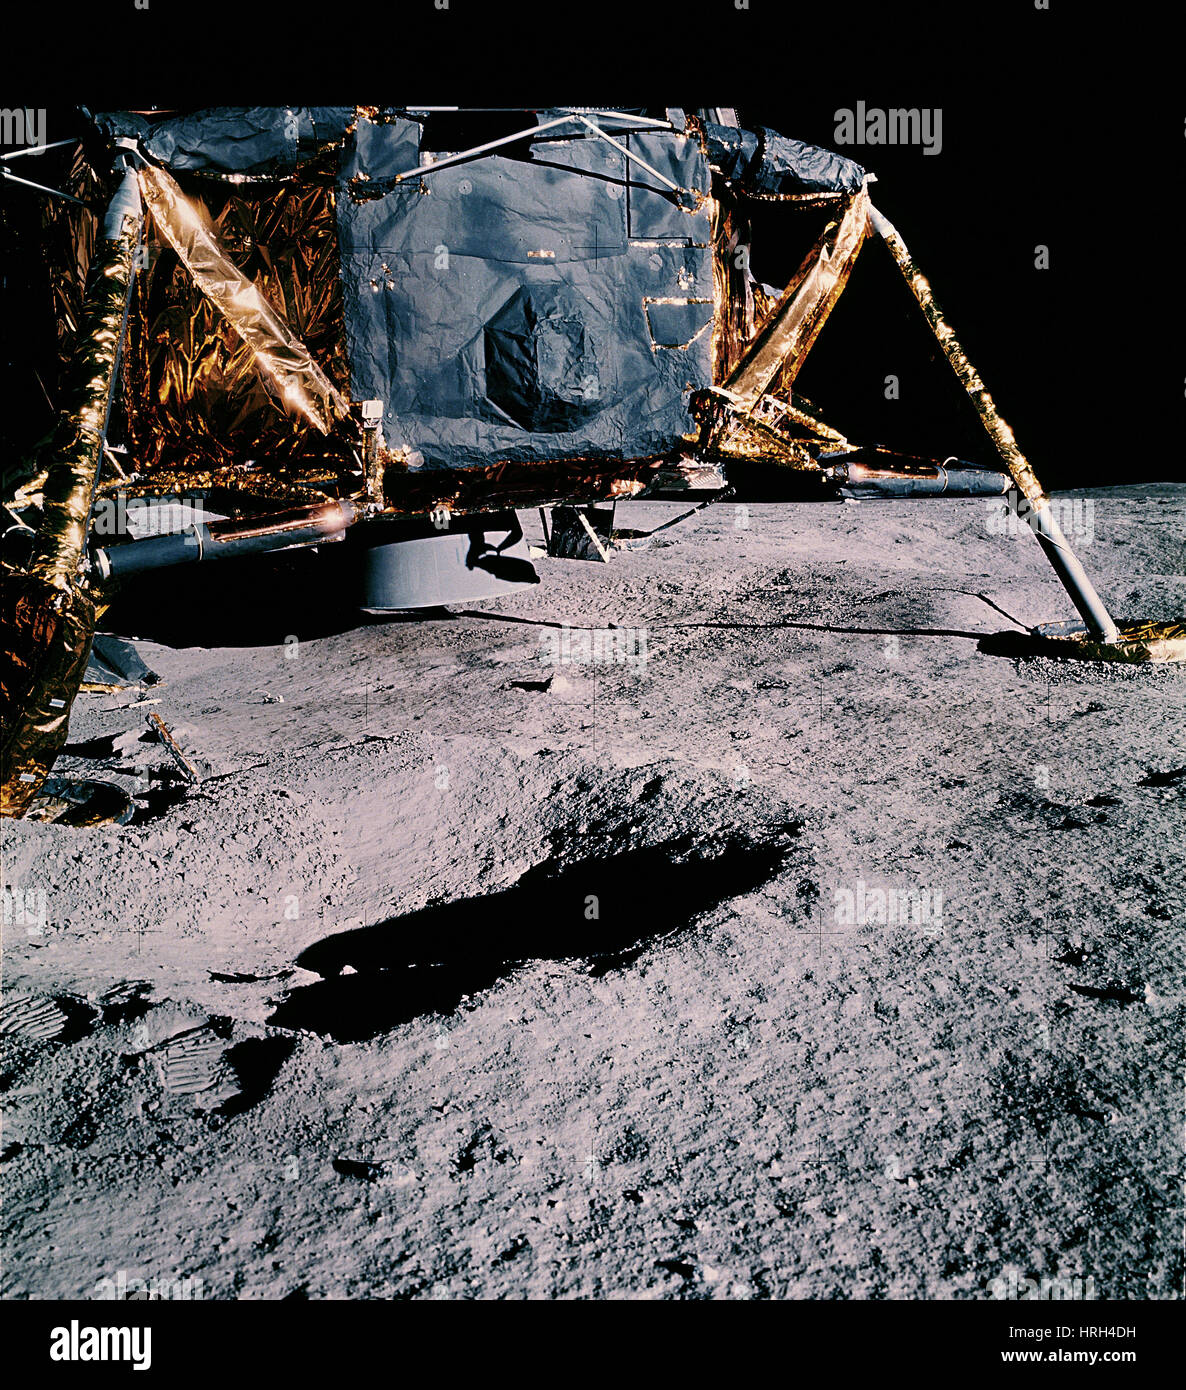 Module lunaire Apollo 14 Photo Stock